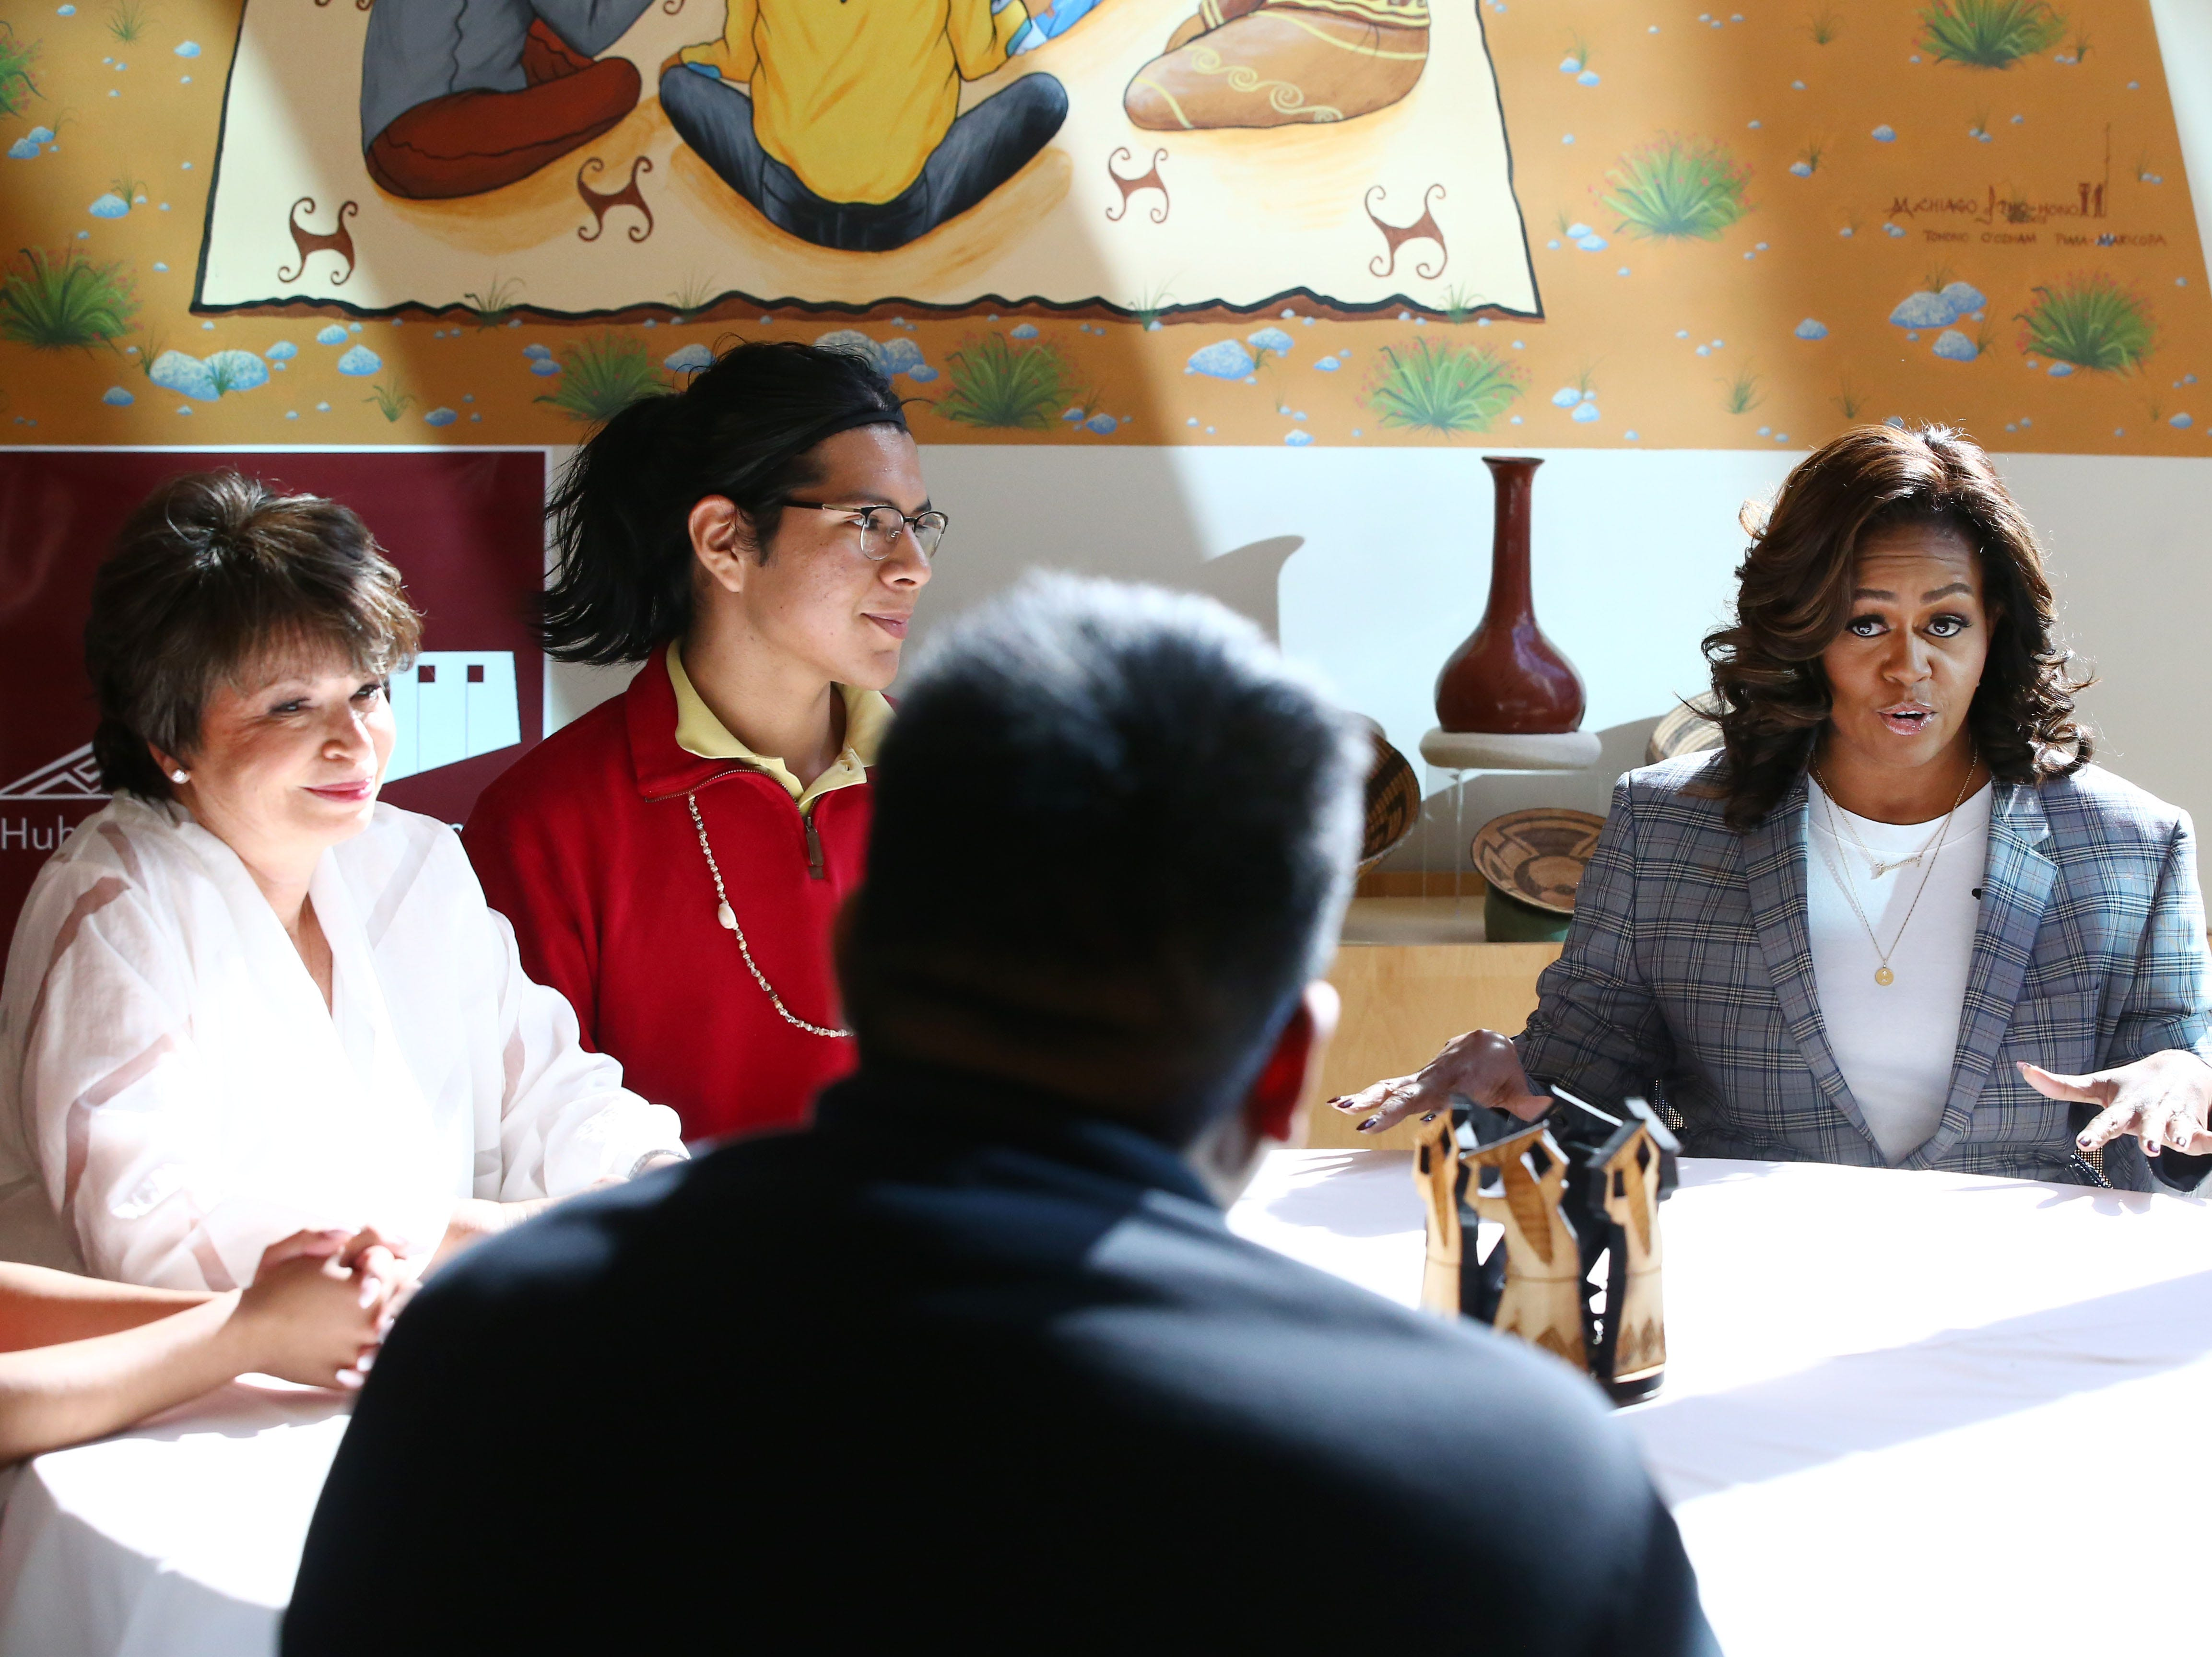 Michelle Obama makes a surprise visit with Gila River Indian Community students at the Huhugam Heritage Center on Feb. 12, 2019 in Chandler. The Huhugam Heritage Center is a museum for Huhugam, Akimel O'otham and Pee Posh treasures from ancestral lands also known by the archaeological name Hohokam.